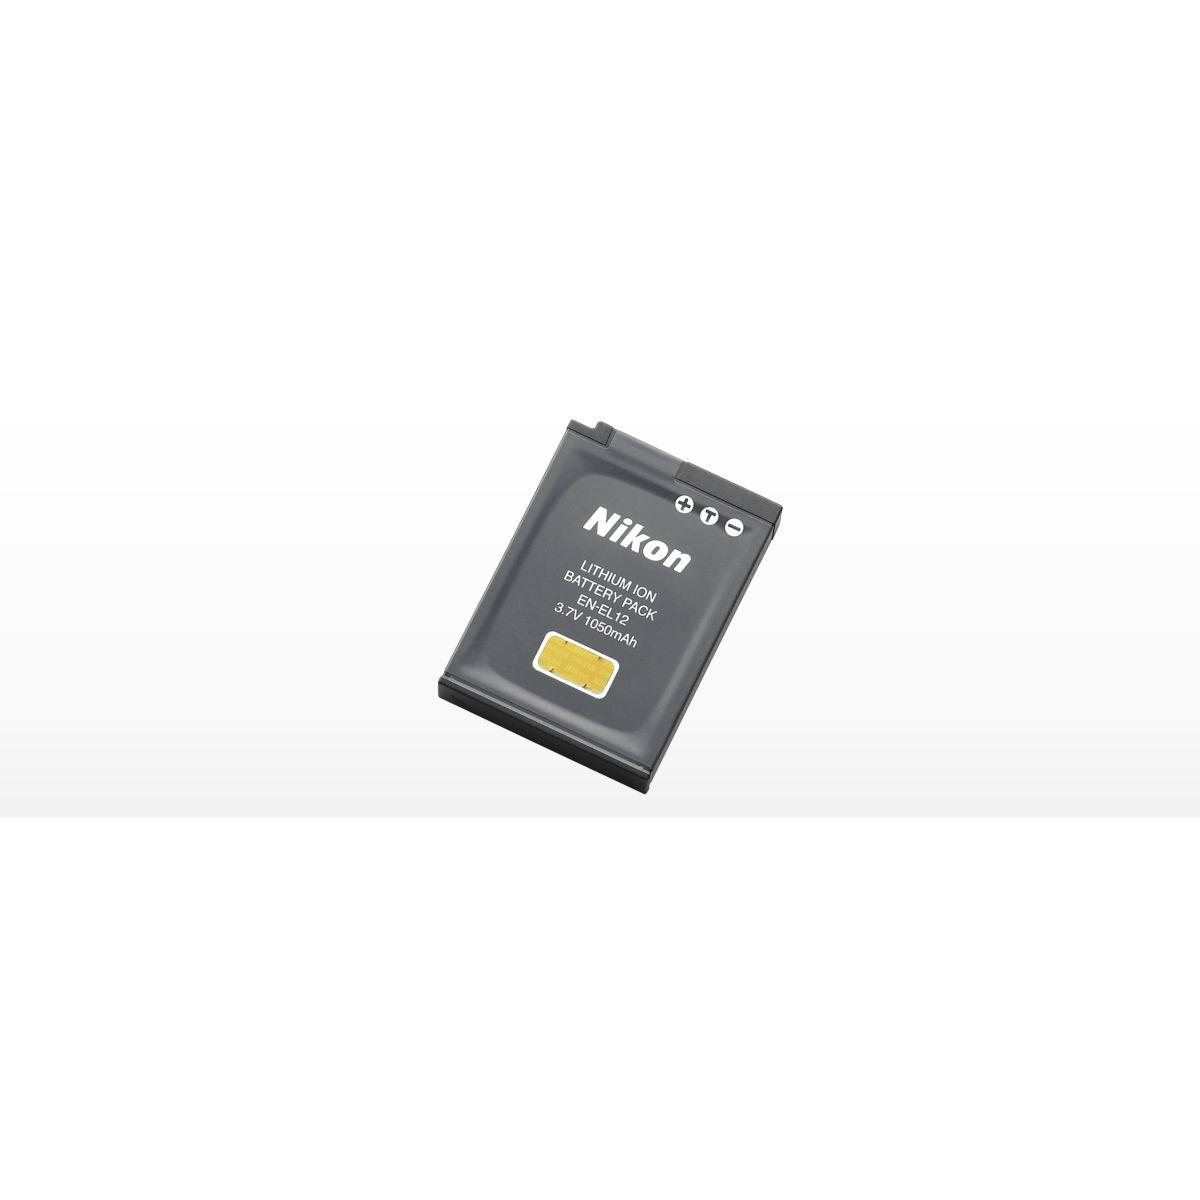 Batterie nikon en-el12 lithium-ion - livraison offerte : code liv (photo)